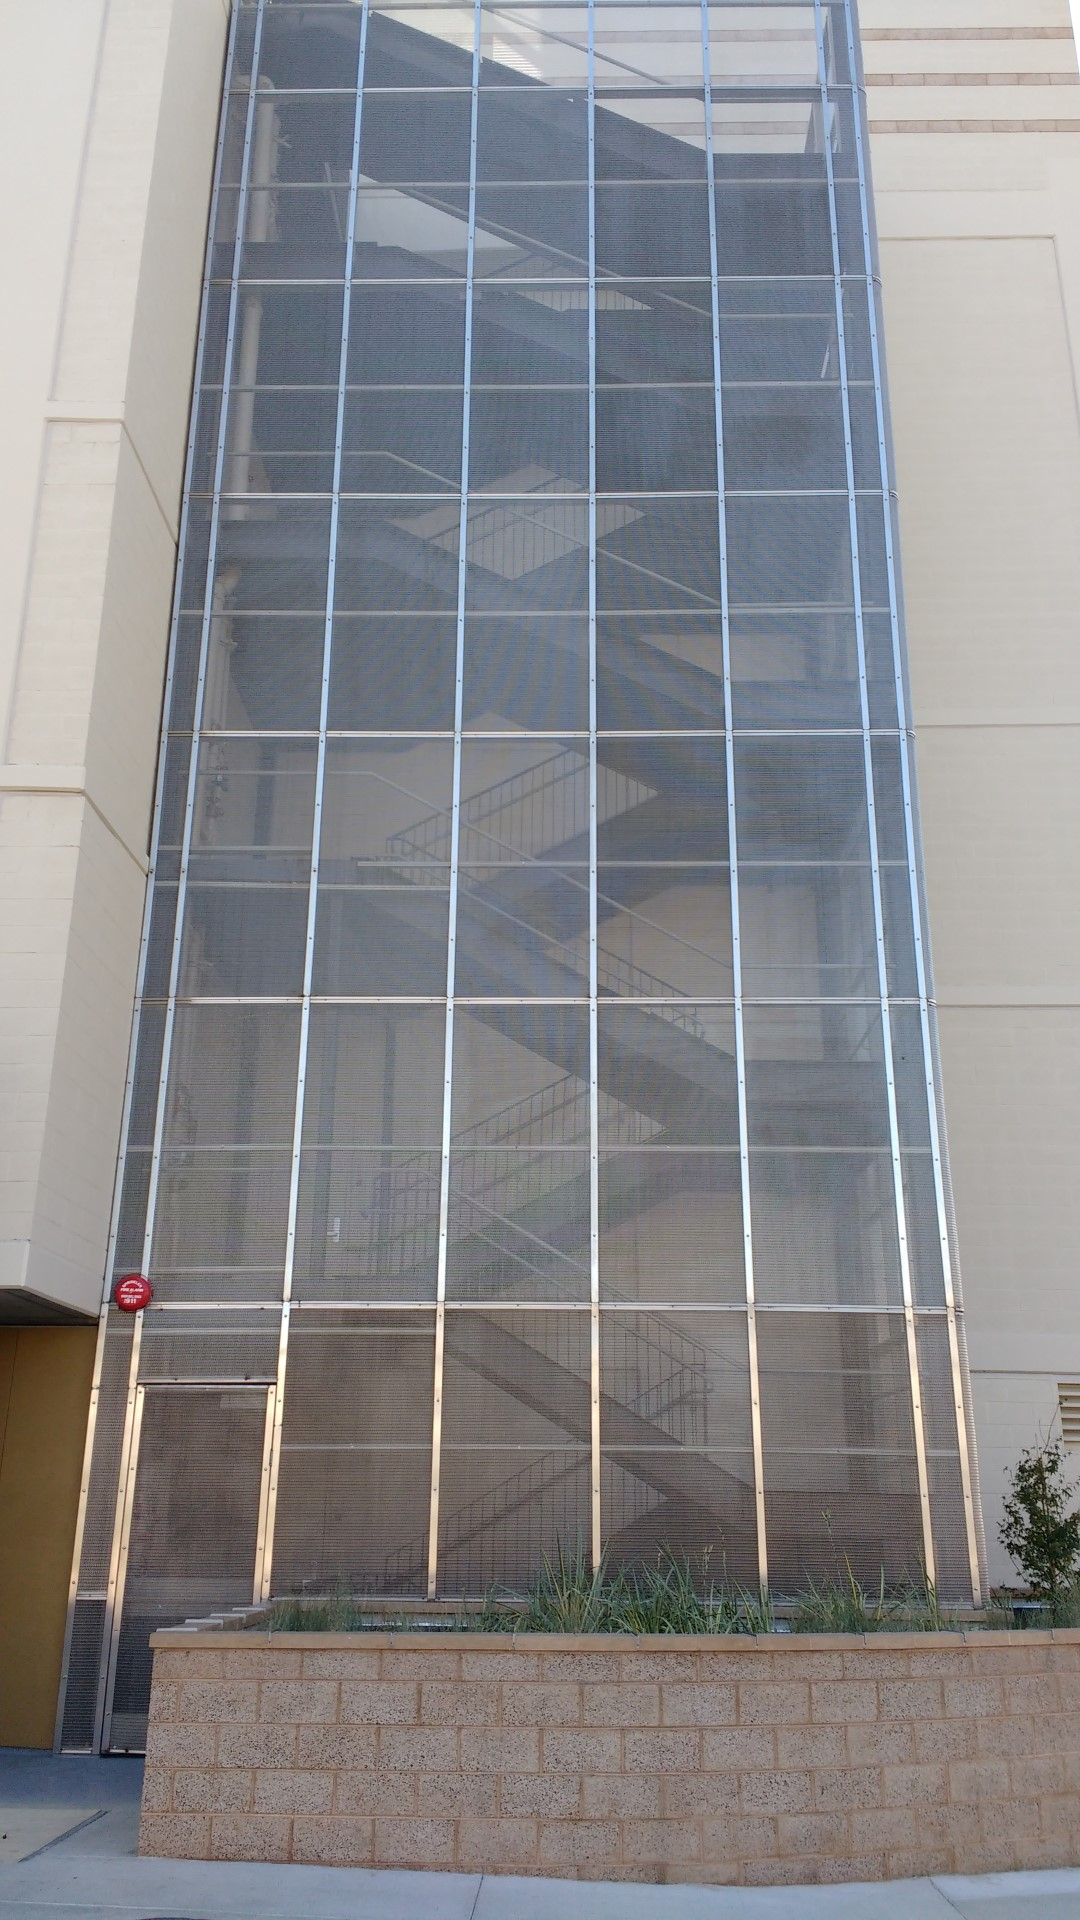 Banker Wire FPZ-10 woven wire mesh serves as an exterior design element.